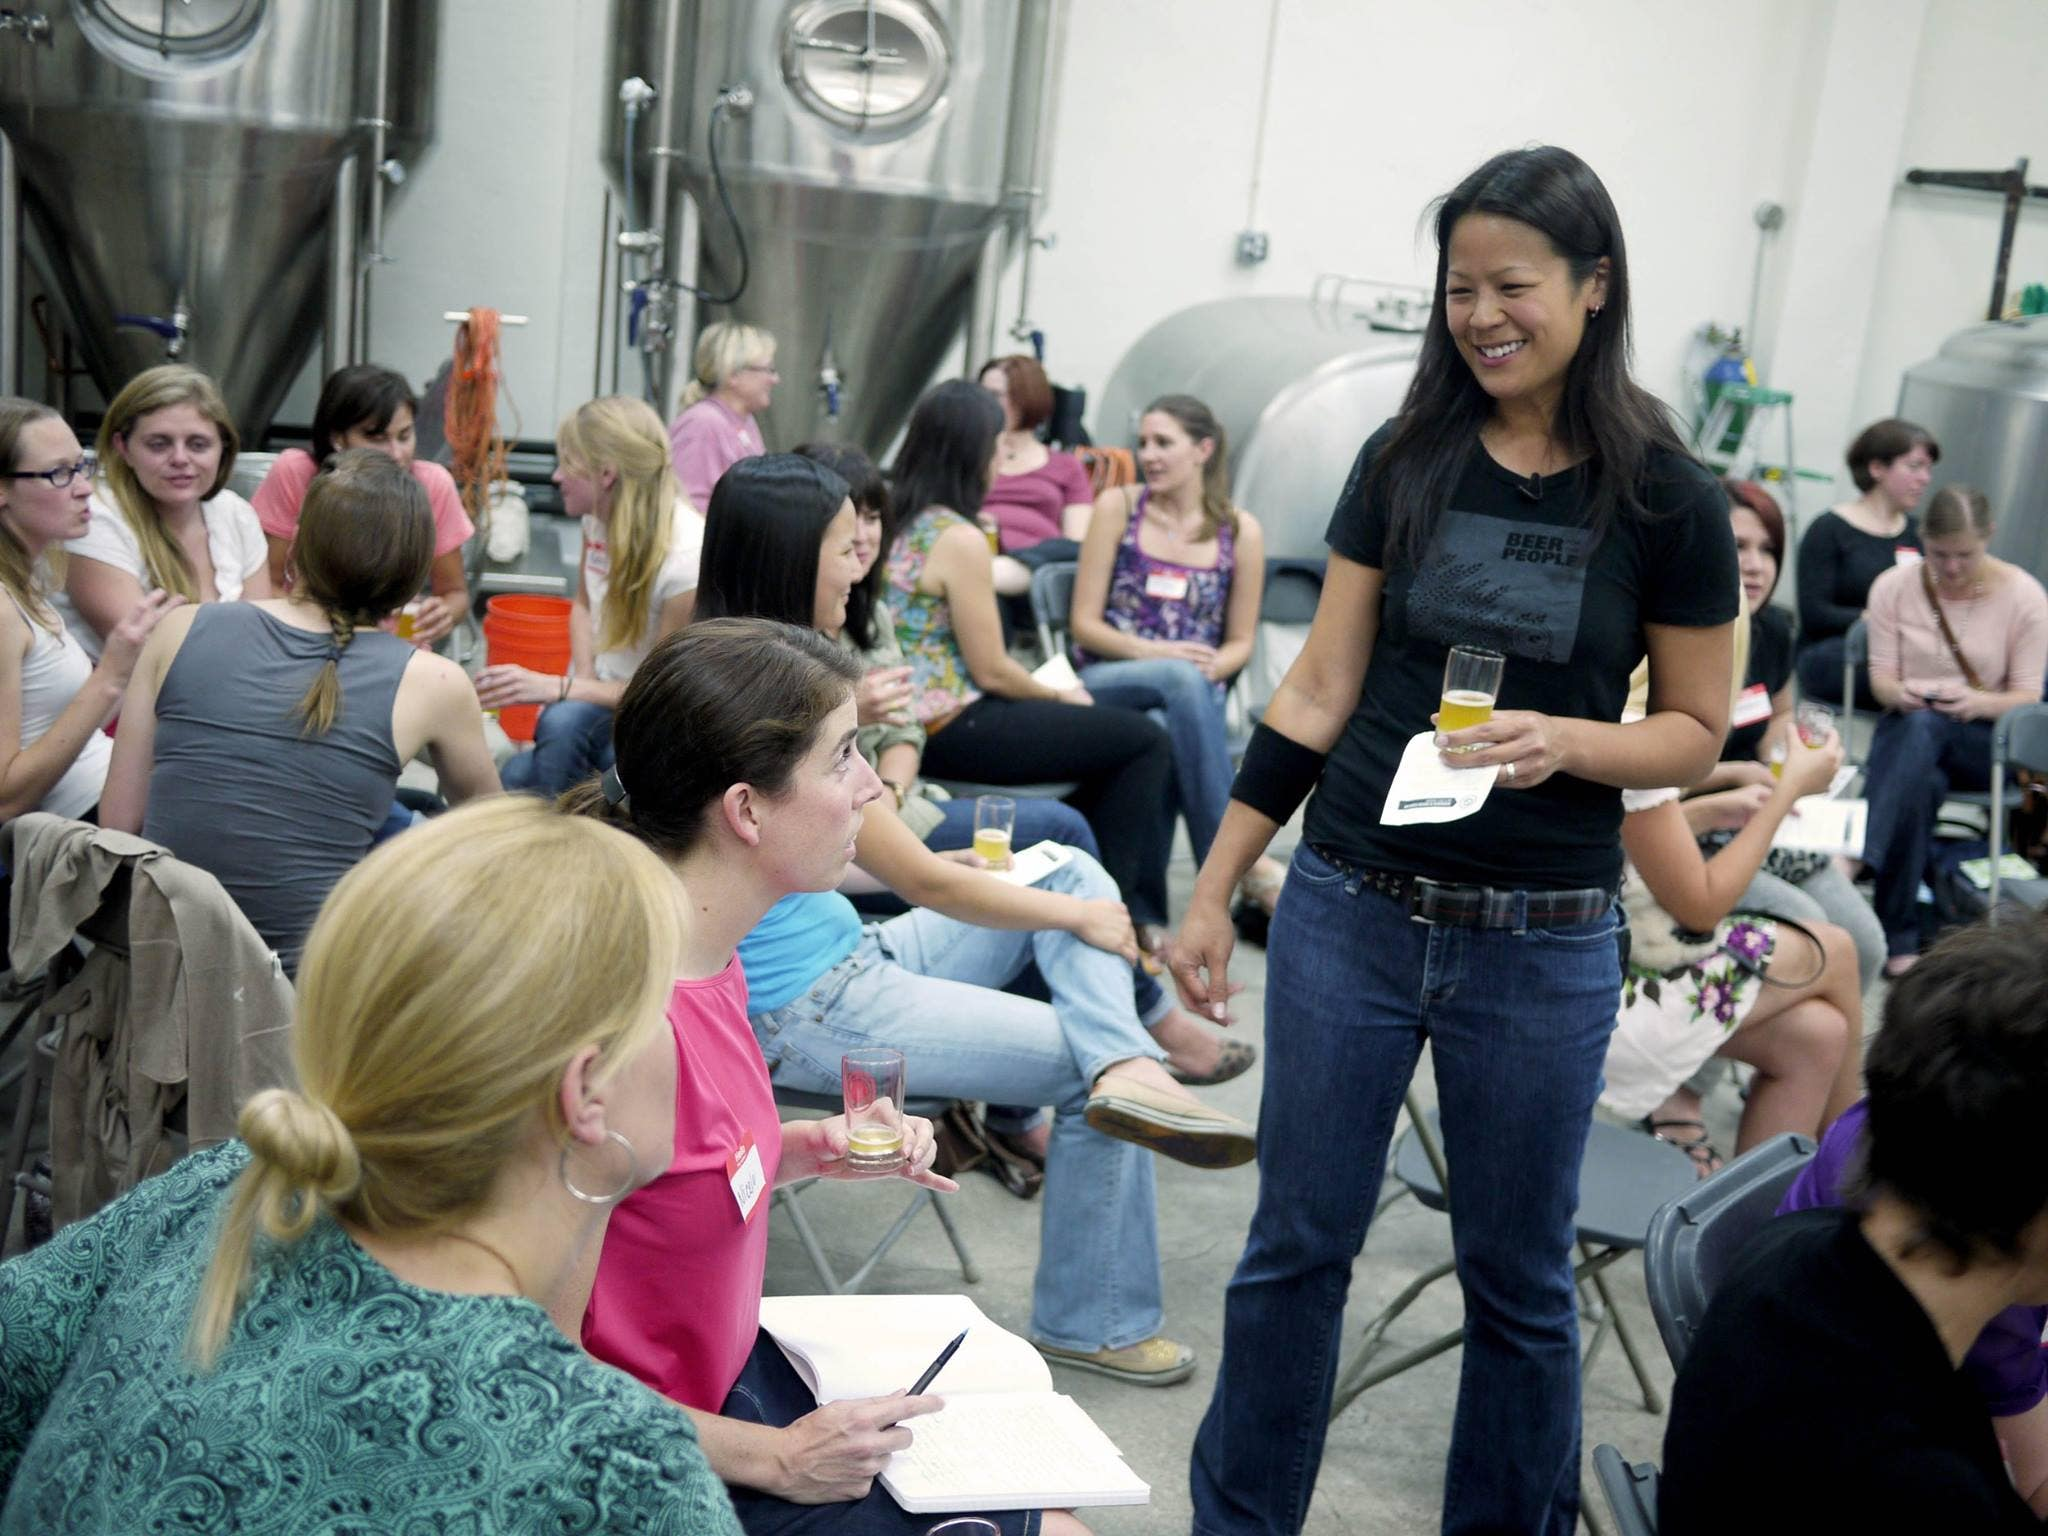 Ting Su hosts the Women's Beer Forum at Eagle Rock Brewery